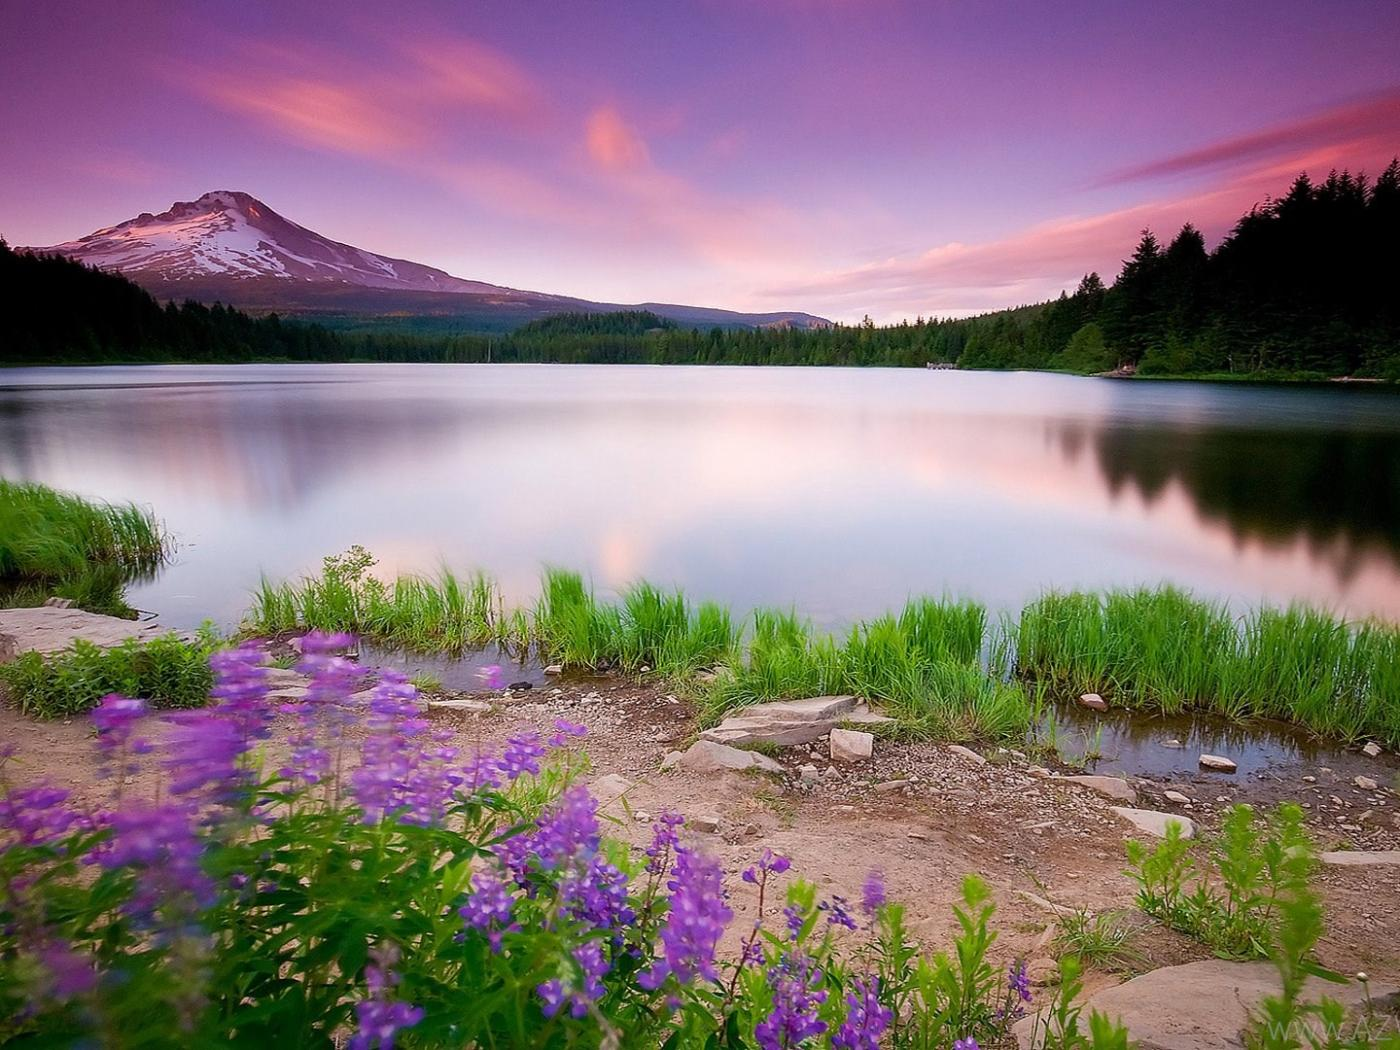 Widescreen Hd Nature Wallpaper In 1080p Size With Purple